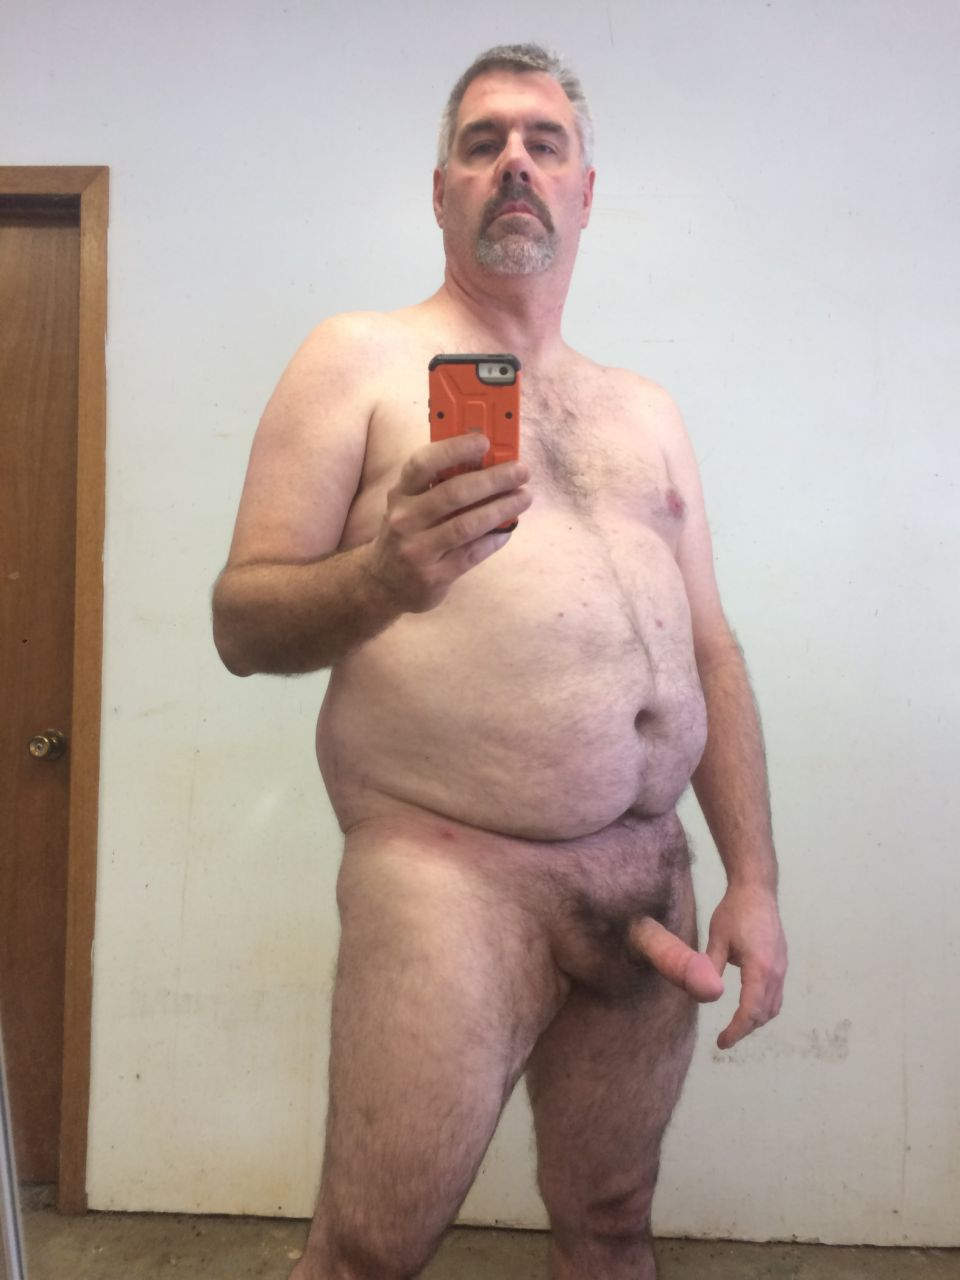 Need some buddy naked time